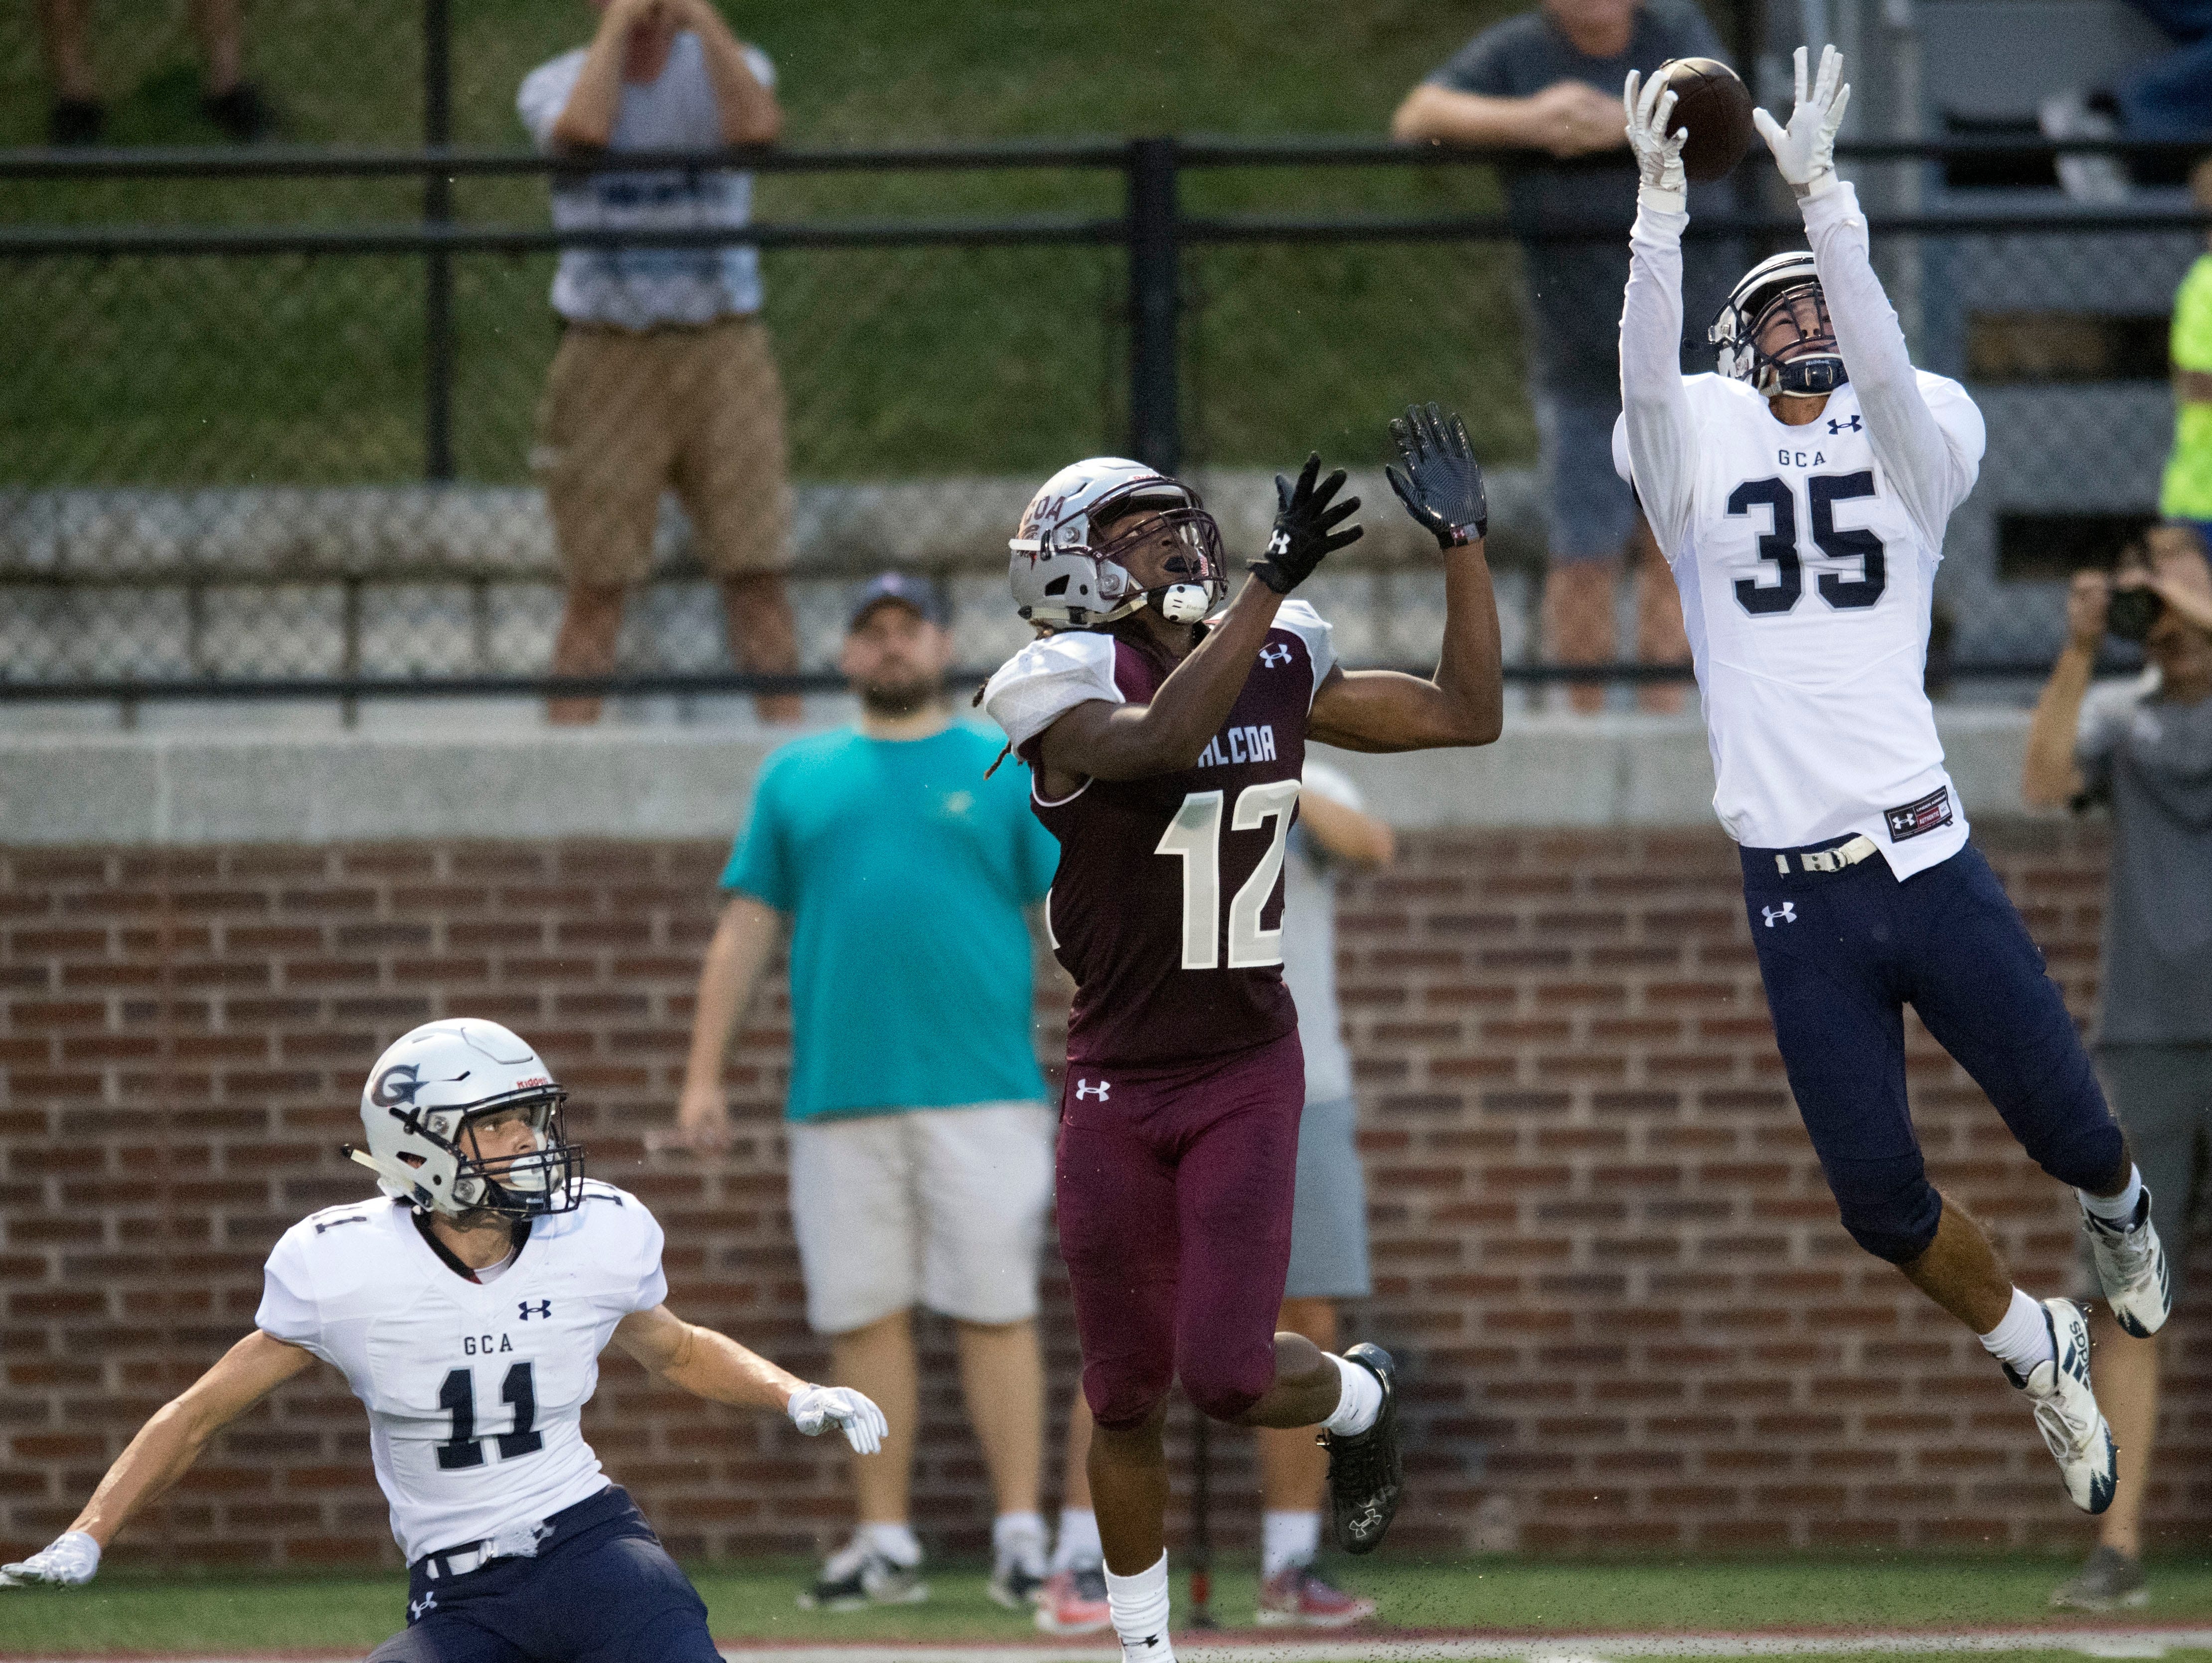 Grace Christian Academy's Ty Carter (35) breaks up a pass intended for Alcoa's Isiah Cox (12) during the football game  at Alcoa on Thursday, August 16, 2018.